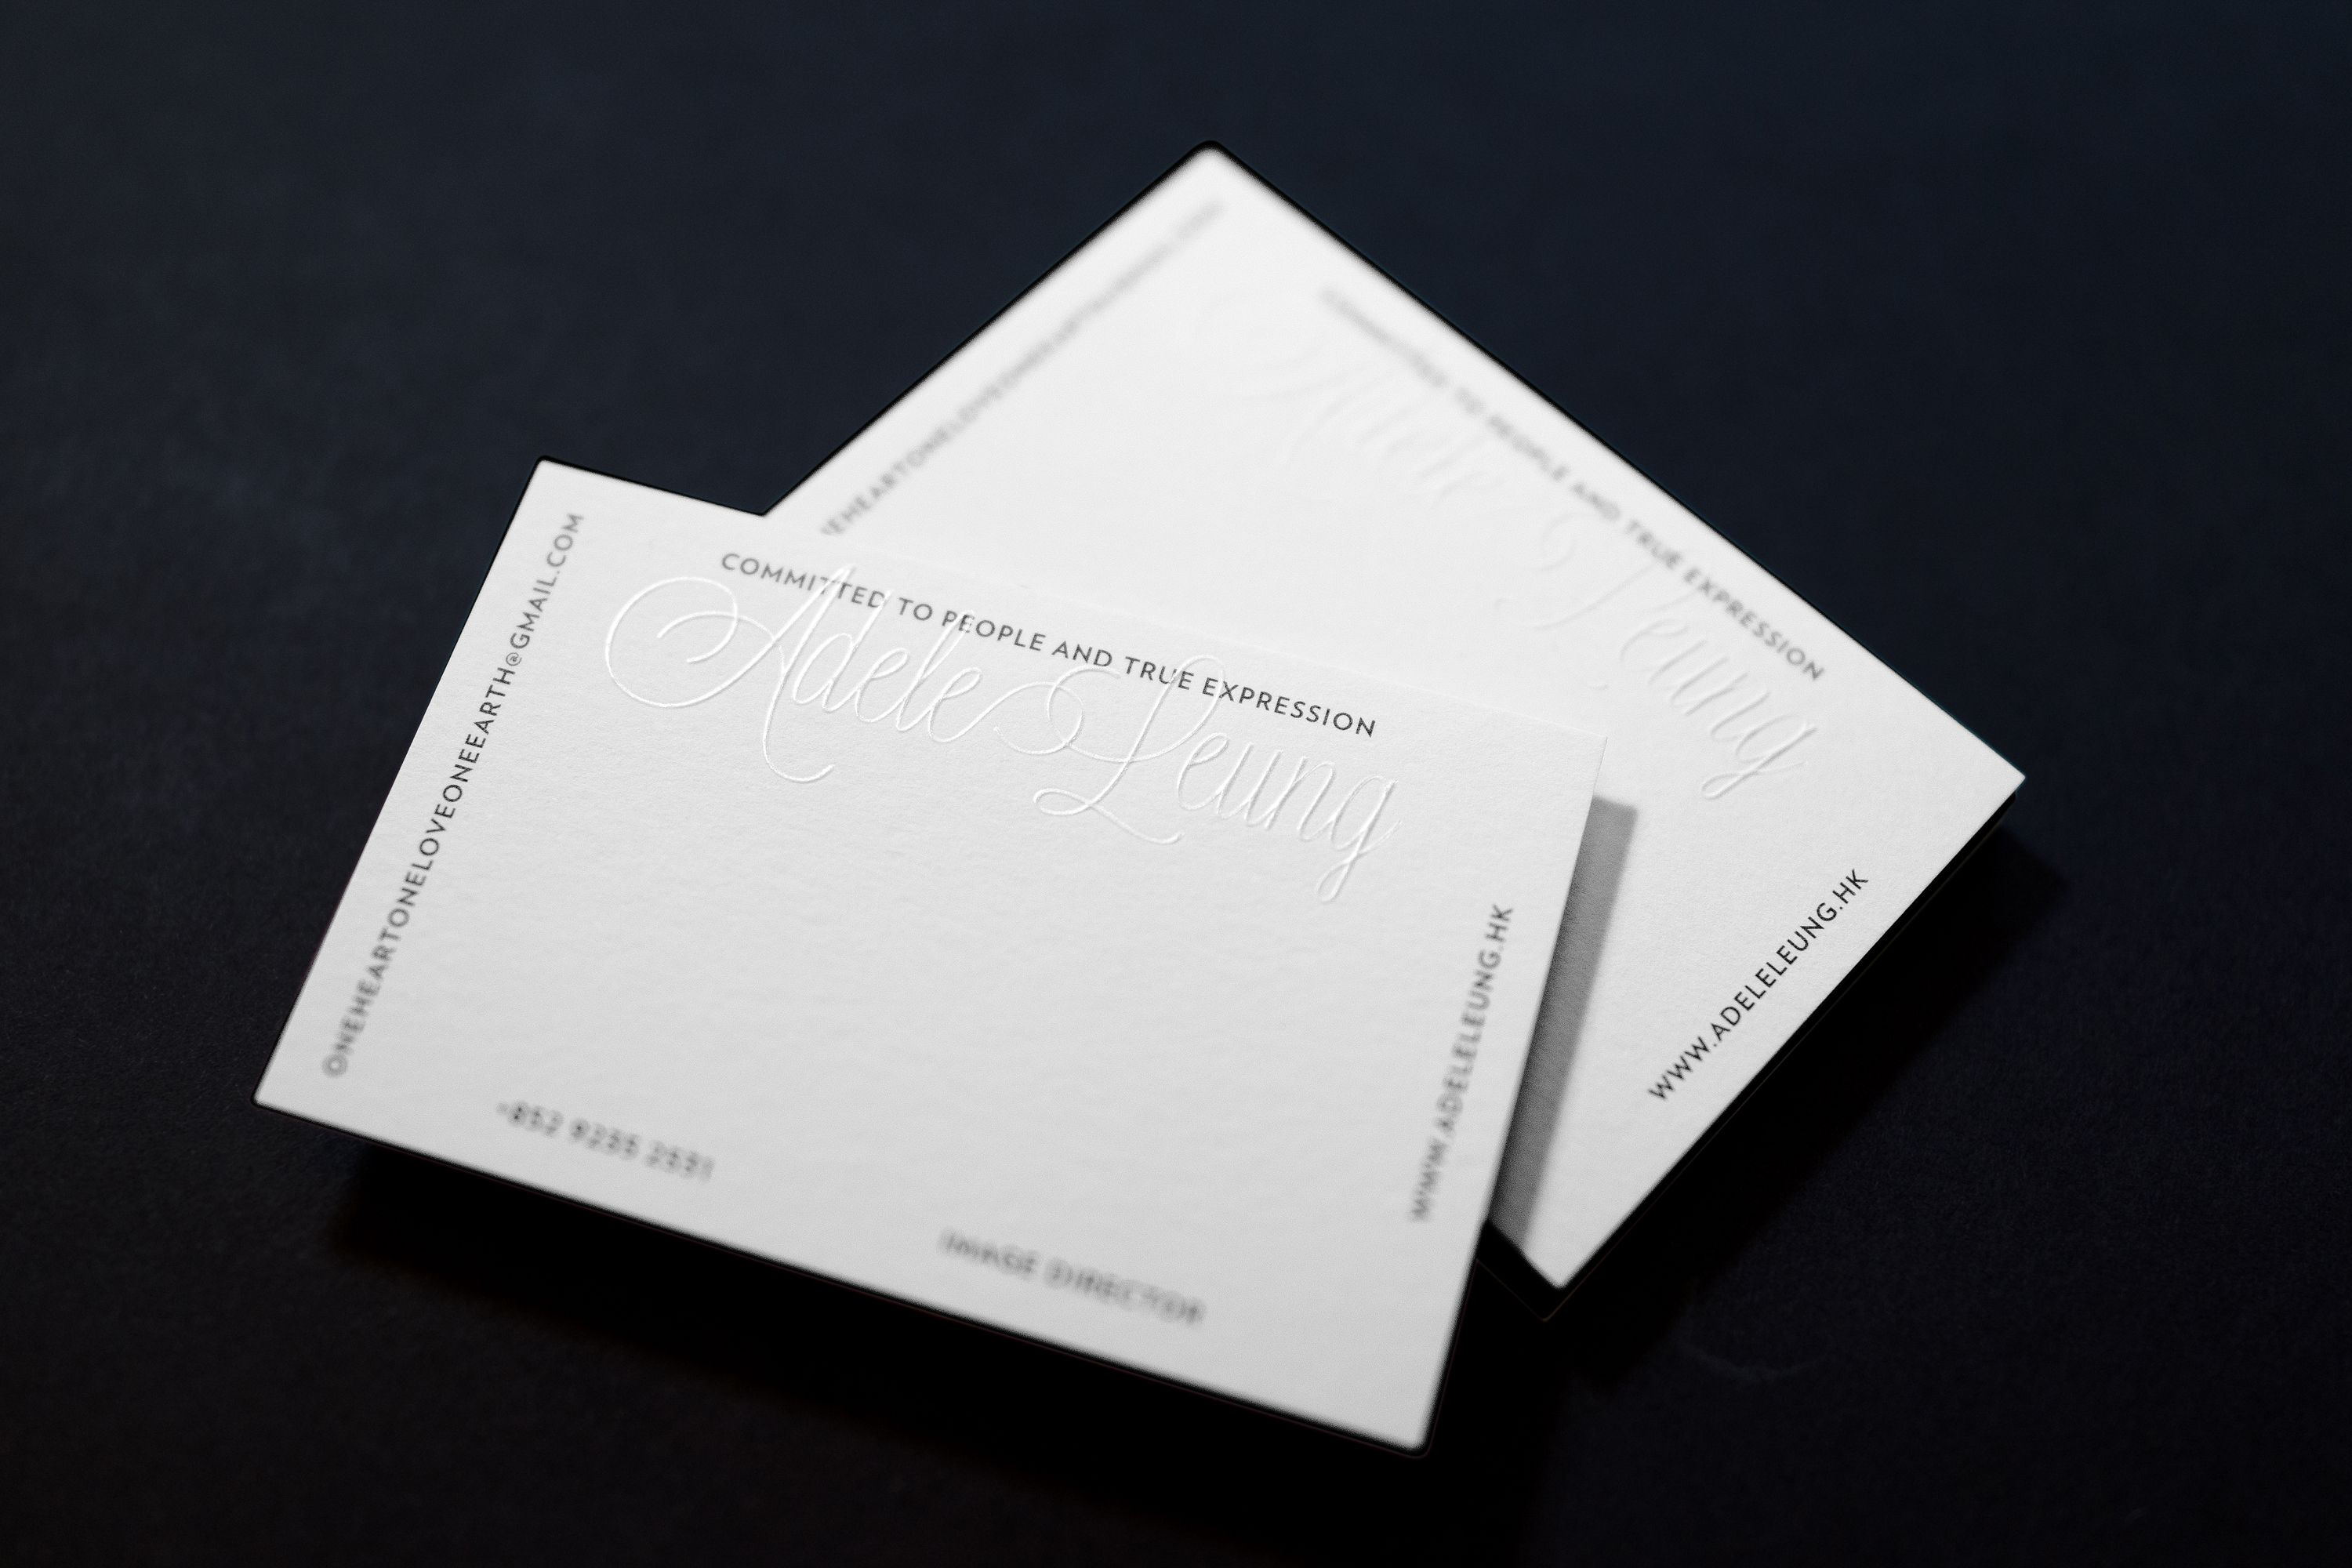 Adele Leung blind embossed business card designed by Studiomuch ...